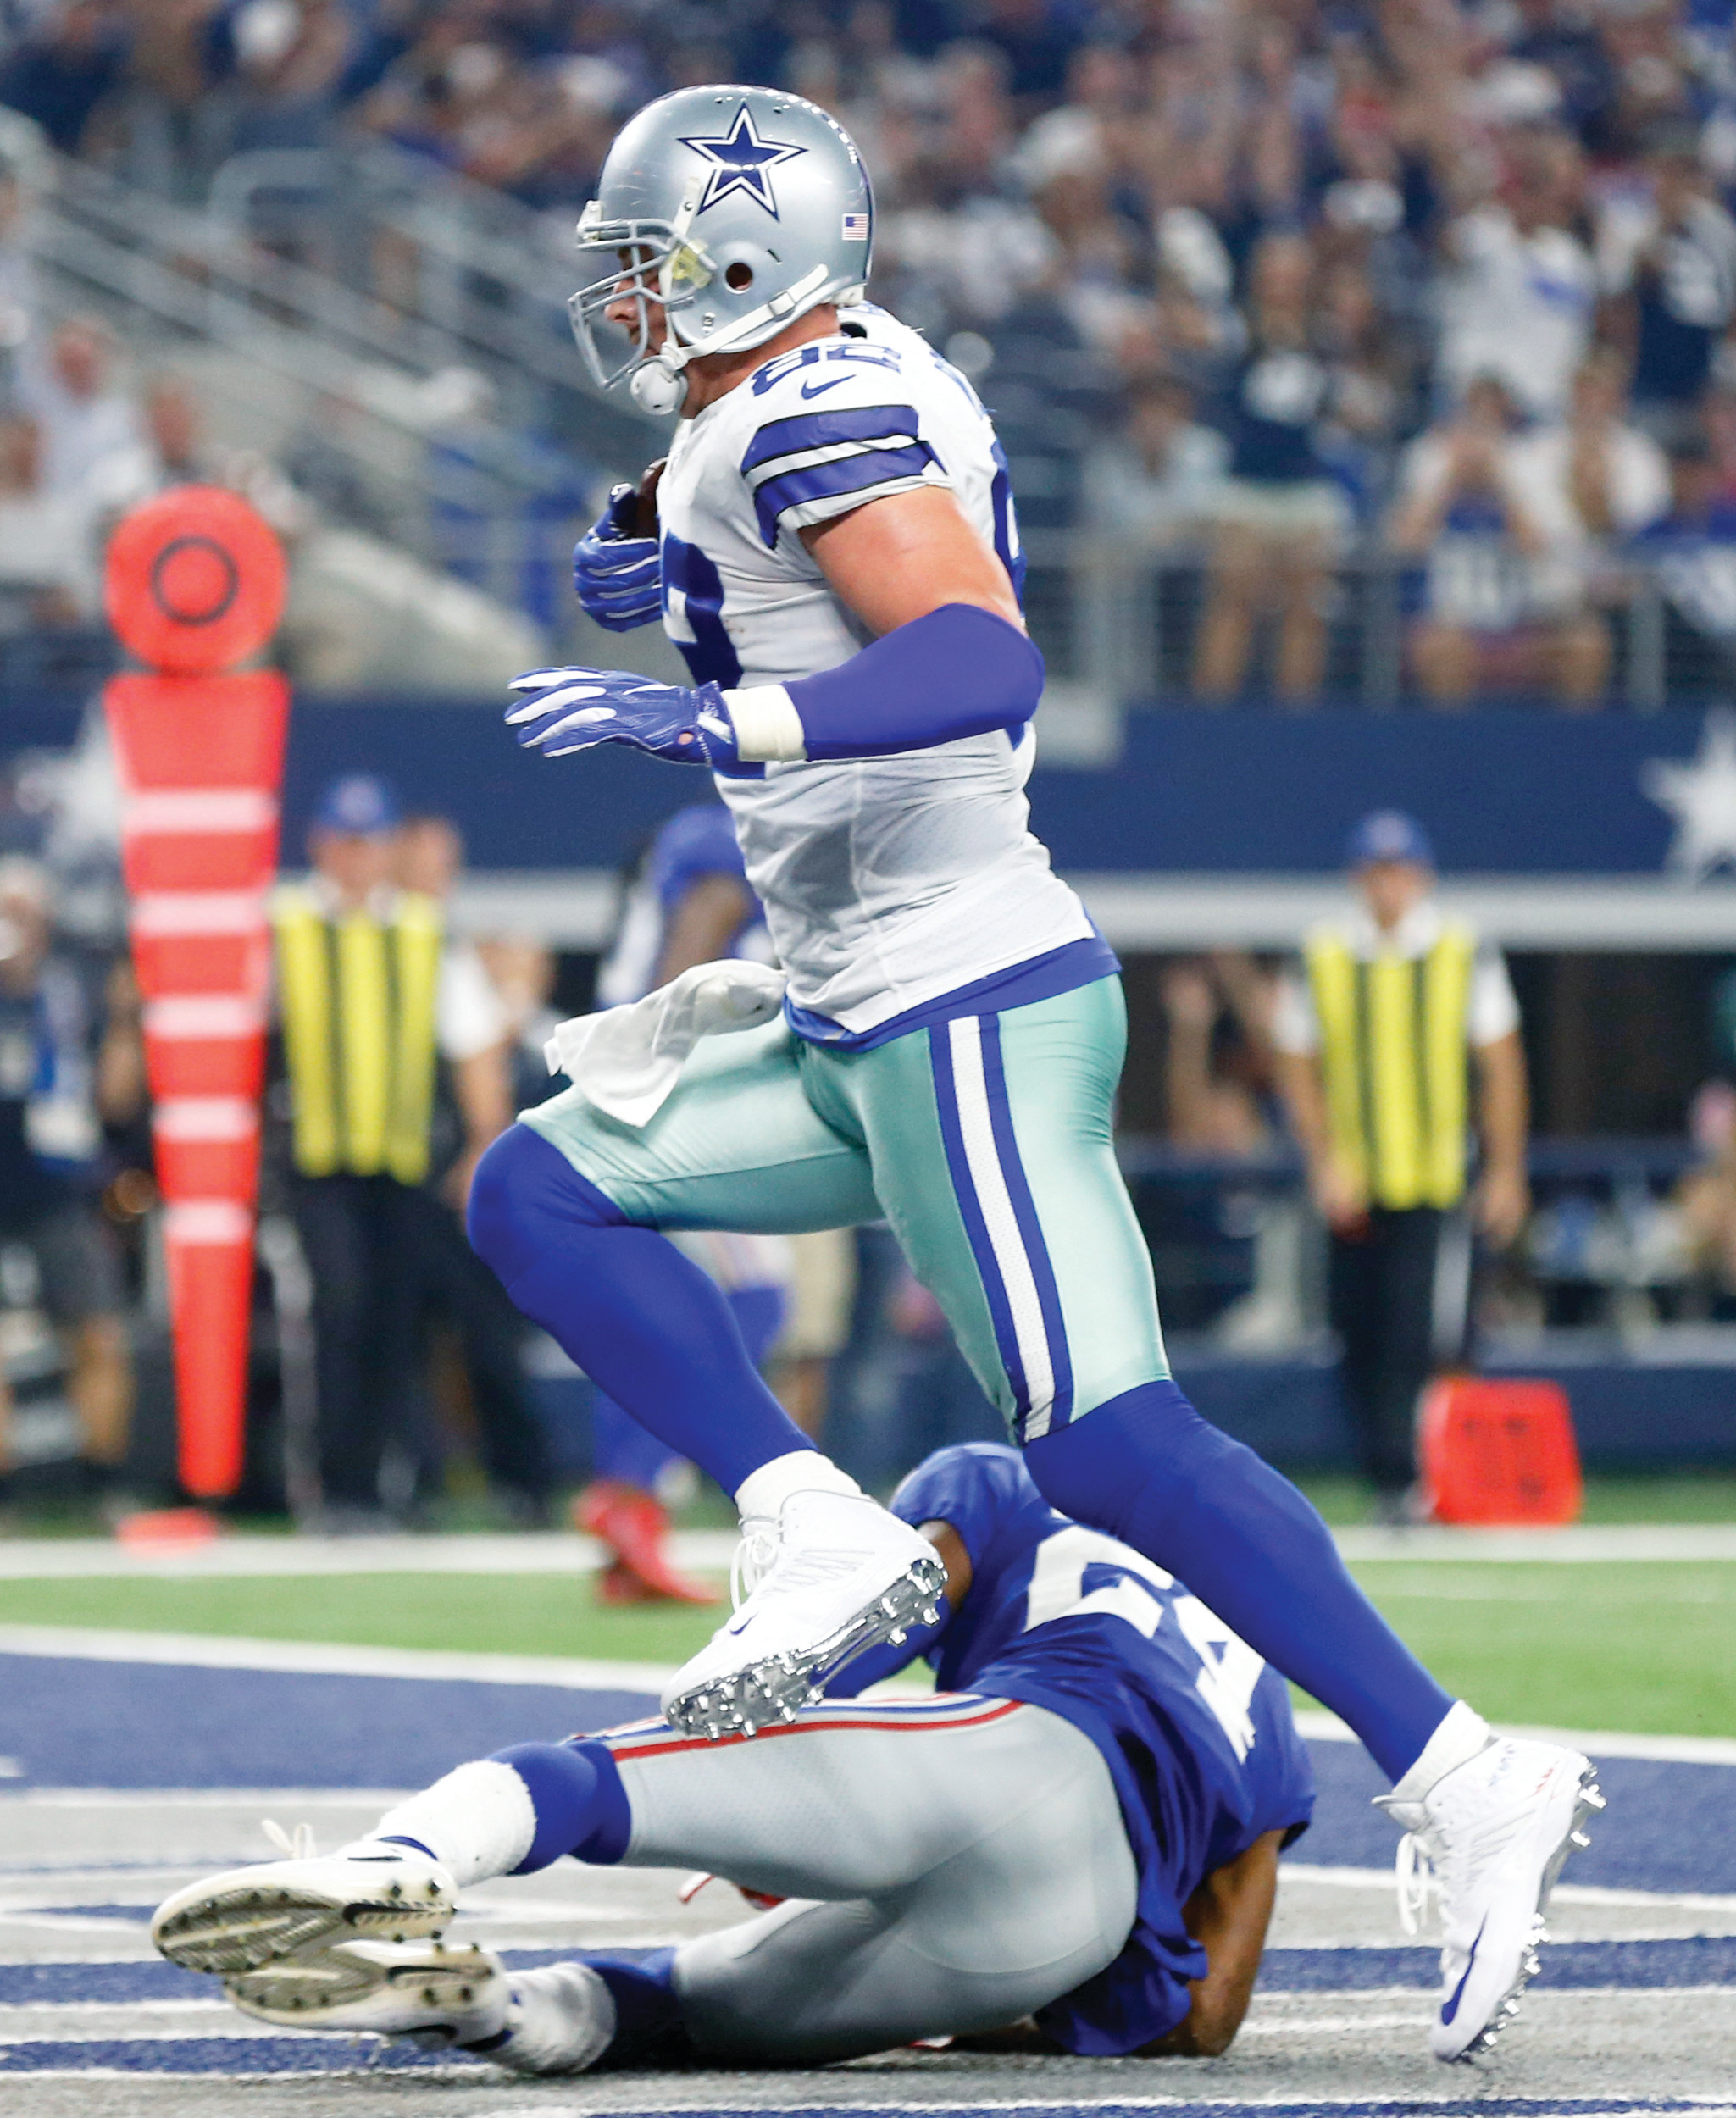 Dallas tight end Jason Witten, top, catches a touchdown pass in front of New York Giants cornerback Eli Apple during the Cowboys' 19-3 victory on Sunday in Arlington, Texas.